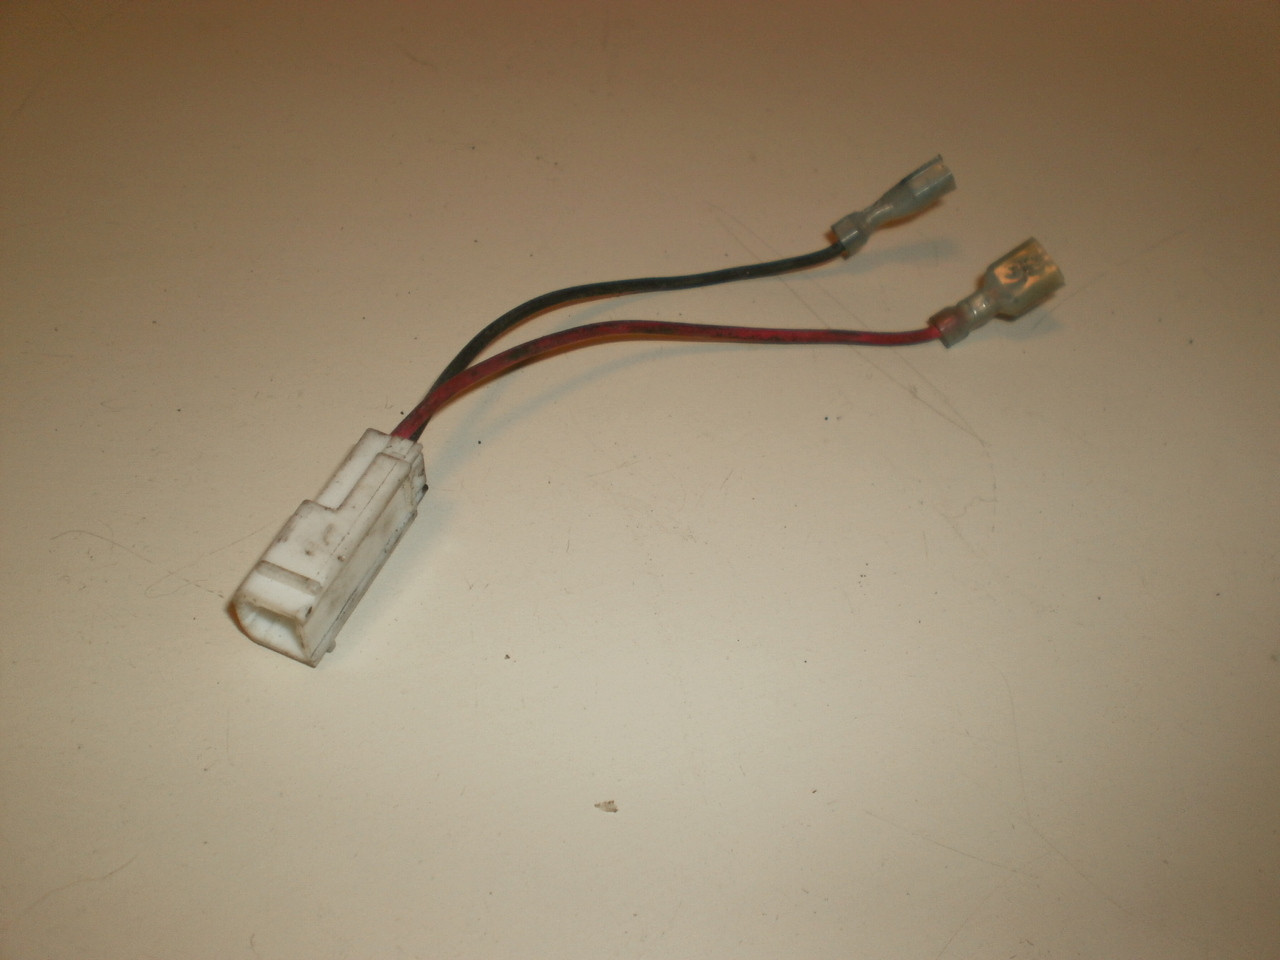 wire harness plug connector clips  price: $19 98  image 1